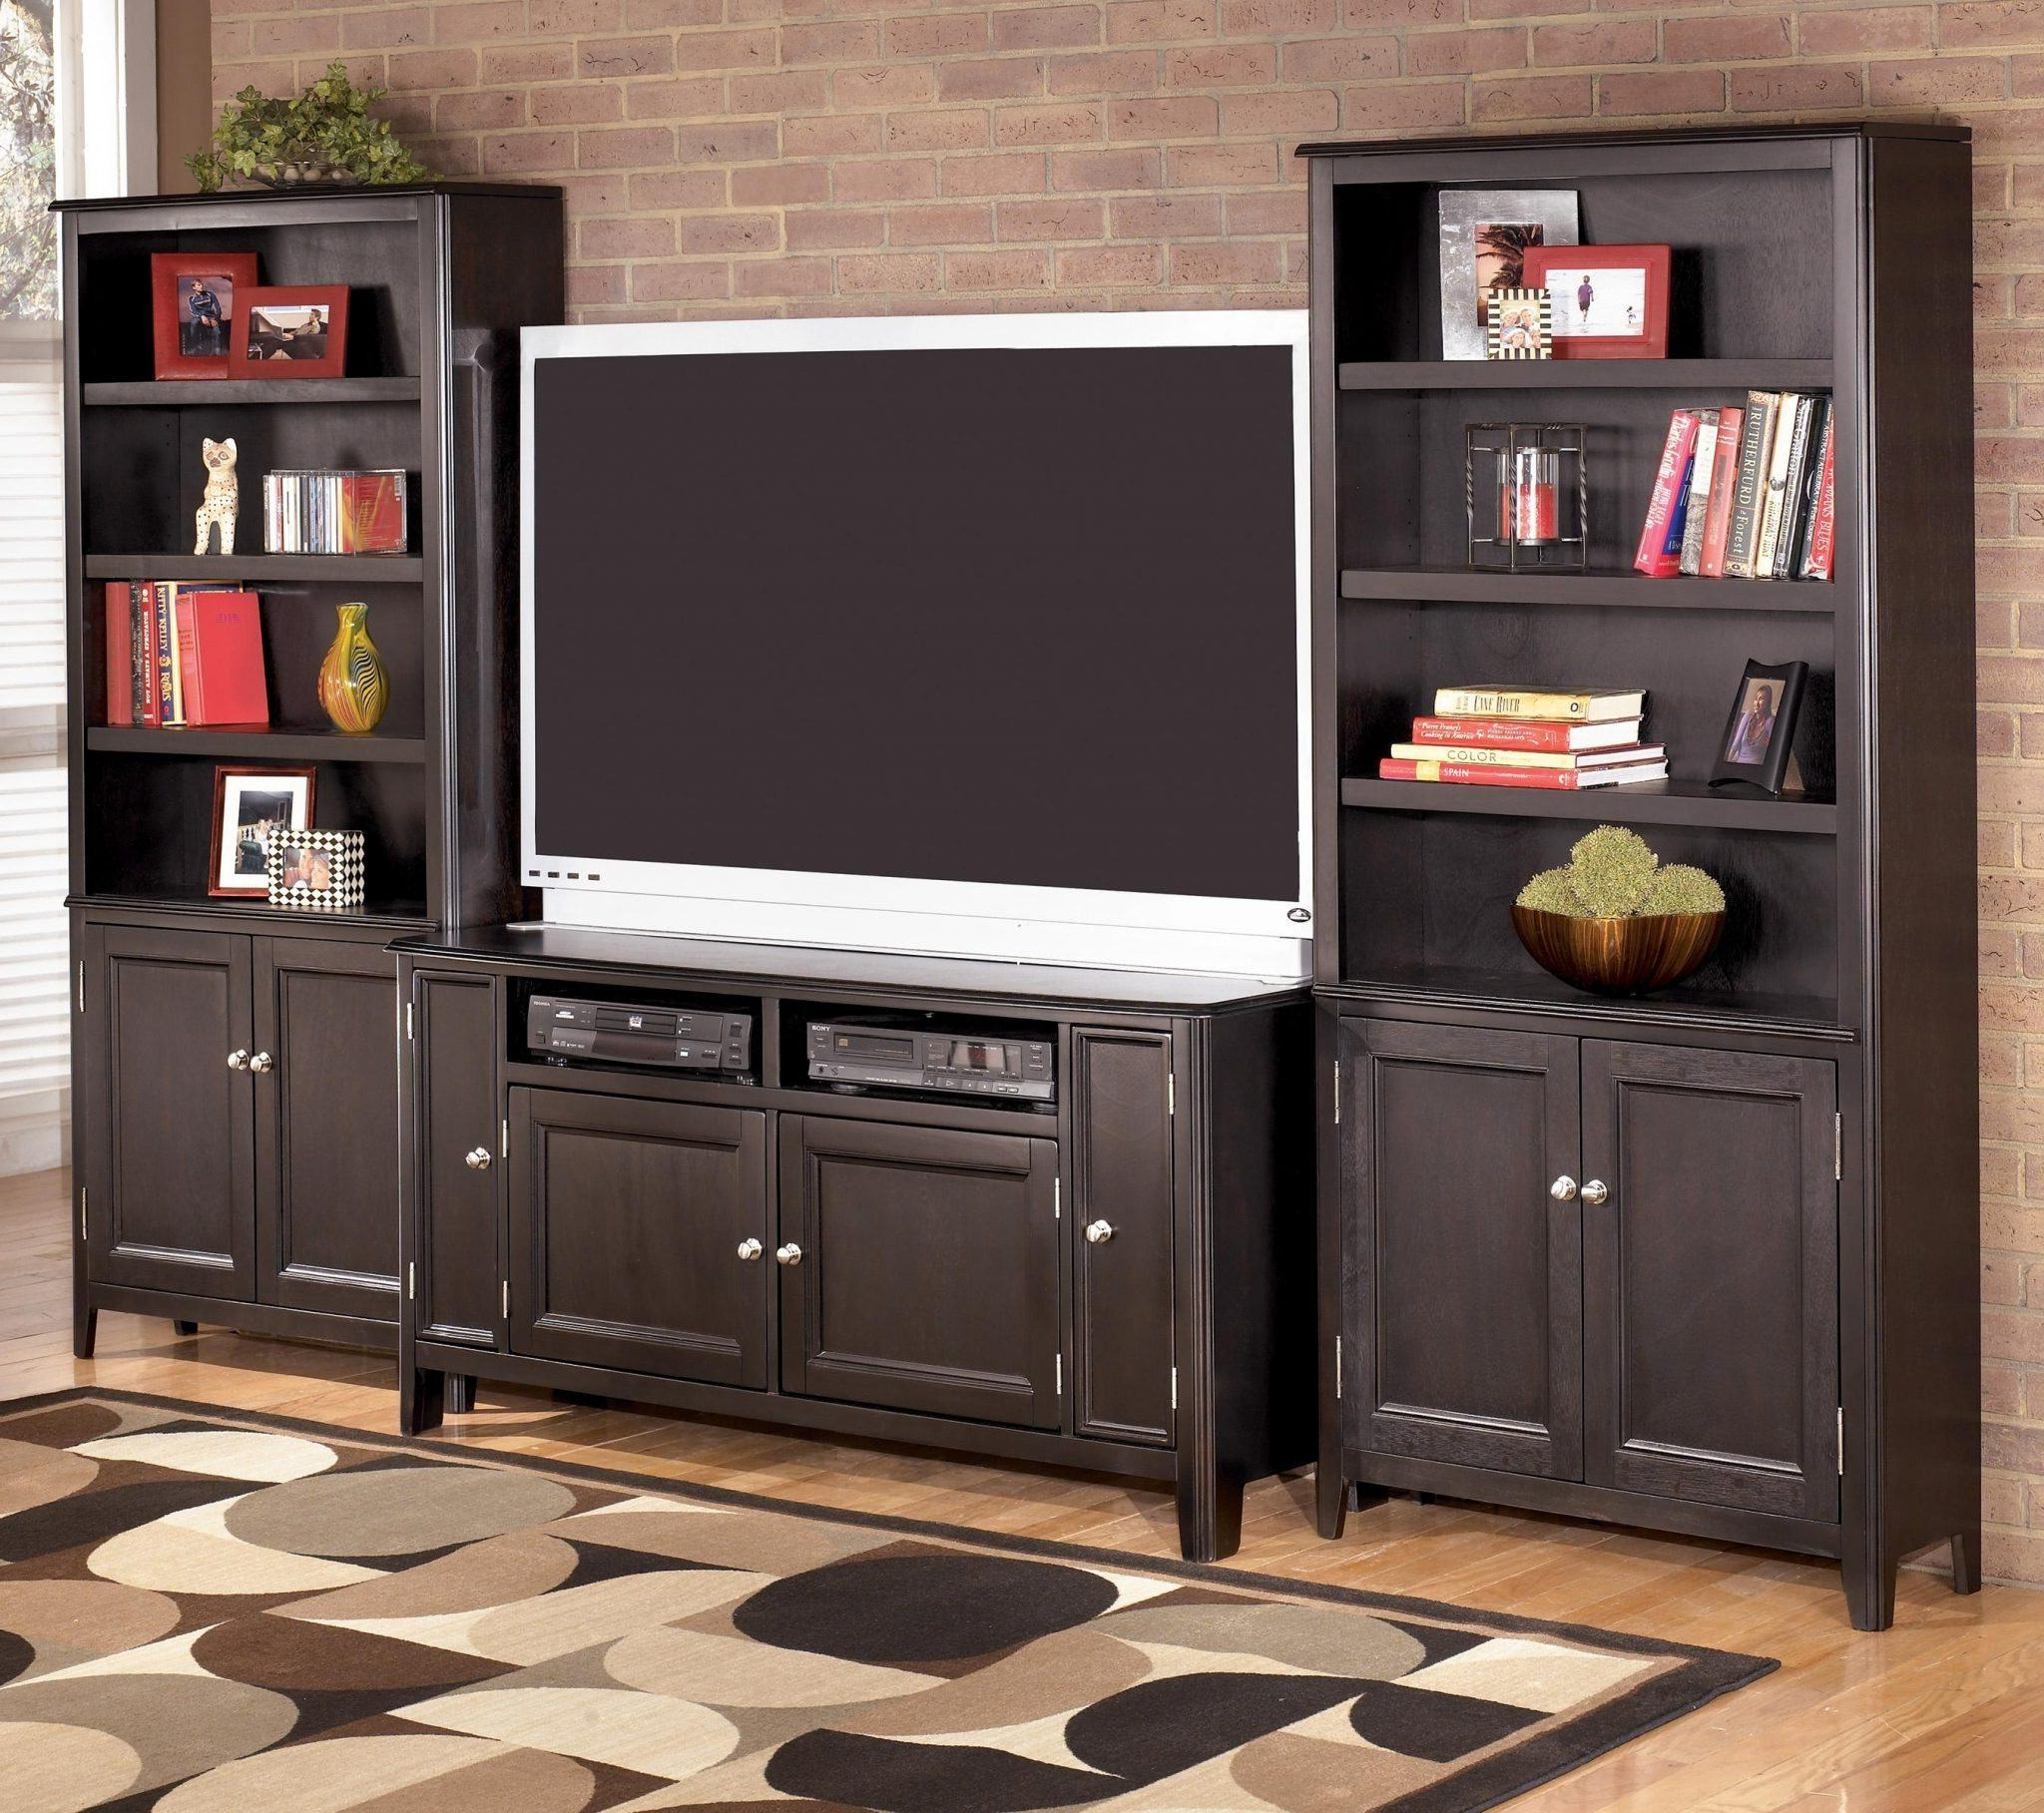 Bookshelf Tv Stands Combo Regarding Most Popular 29 Cool Bookcase Tv Stand Combo For Living Room Decor (View 10 of 20)